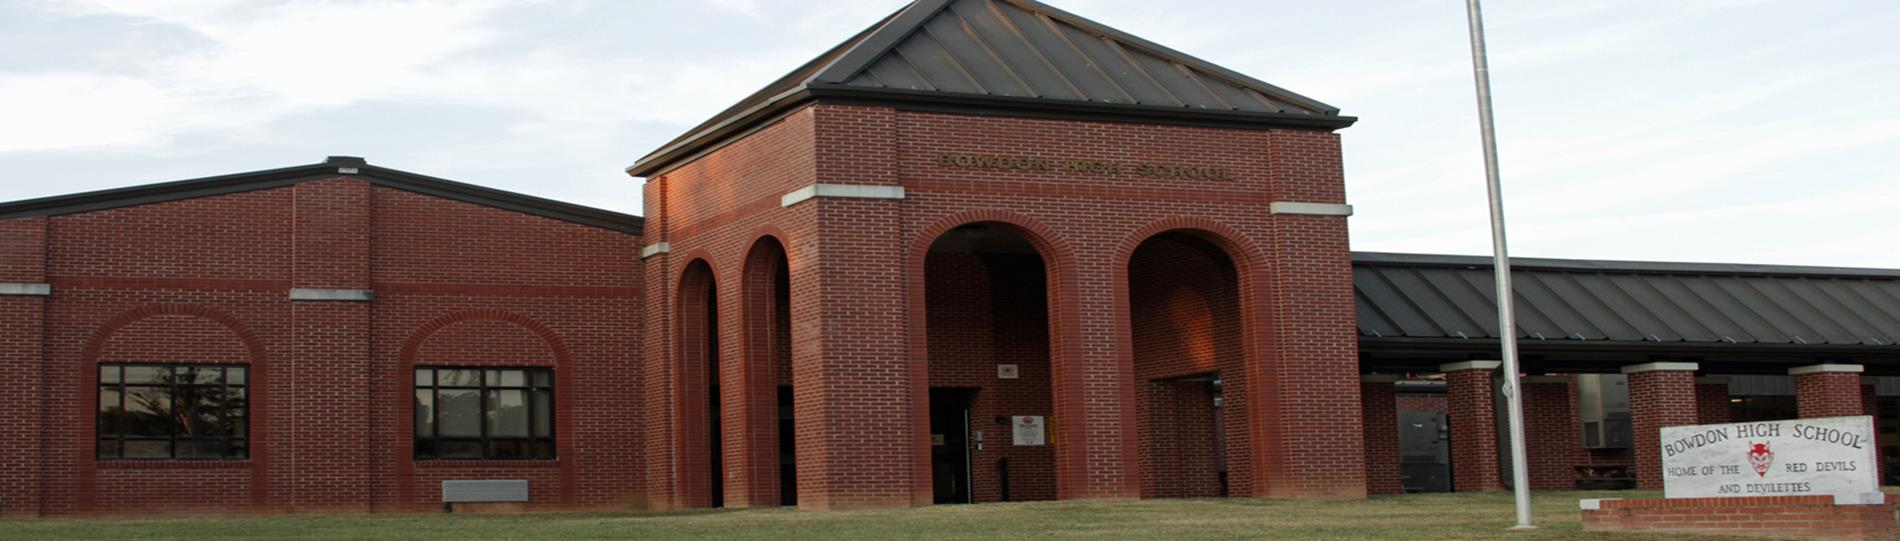 picture of Bowdon High School building